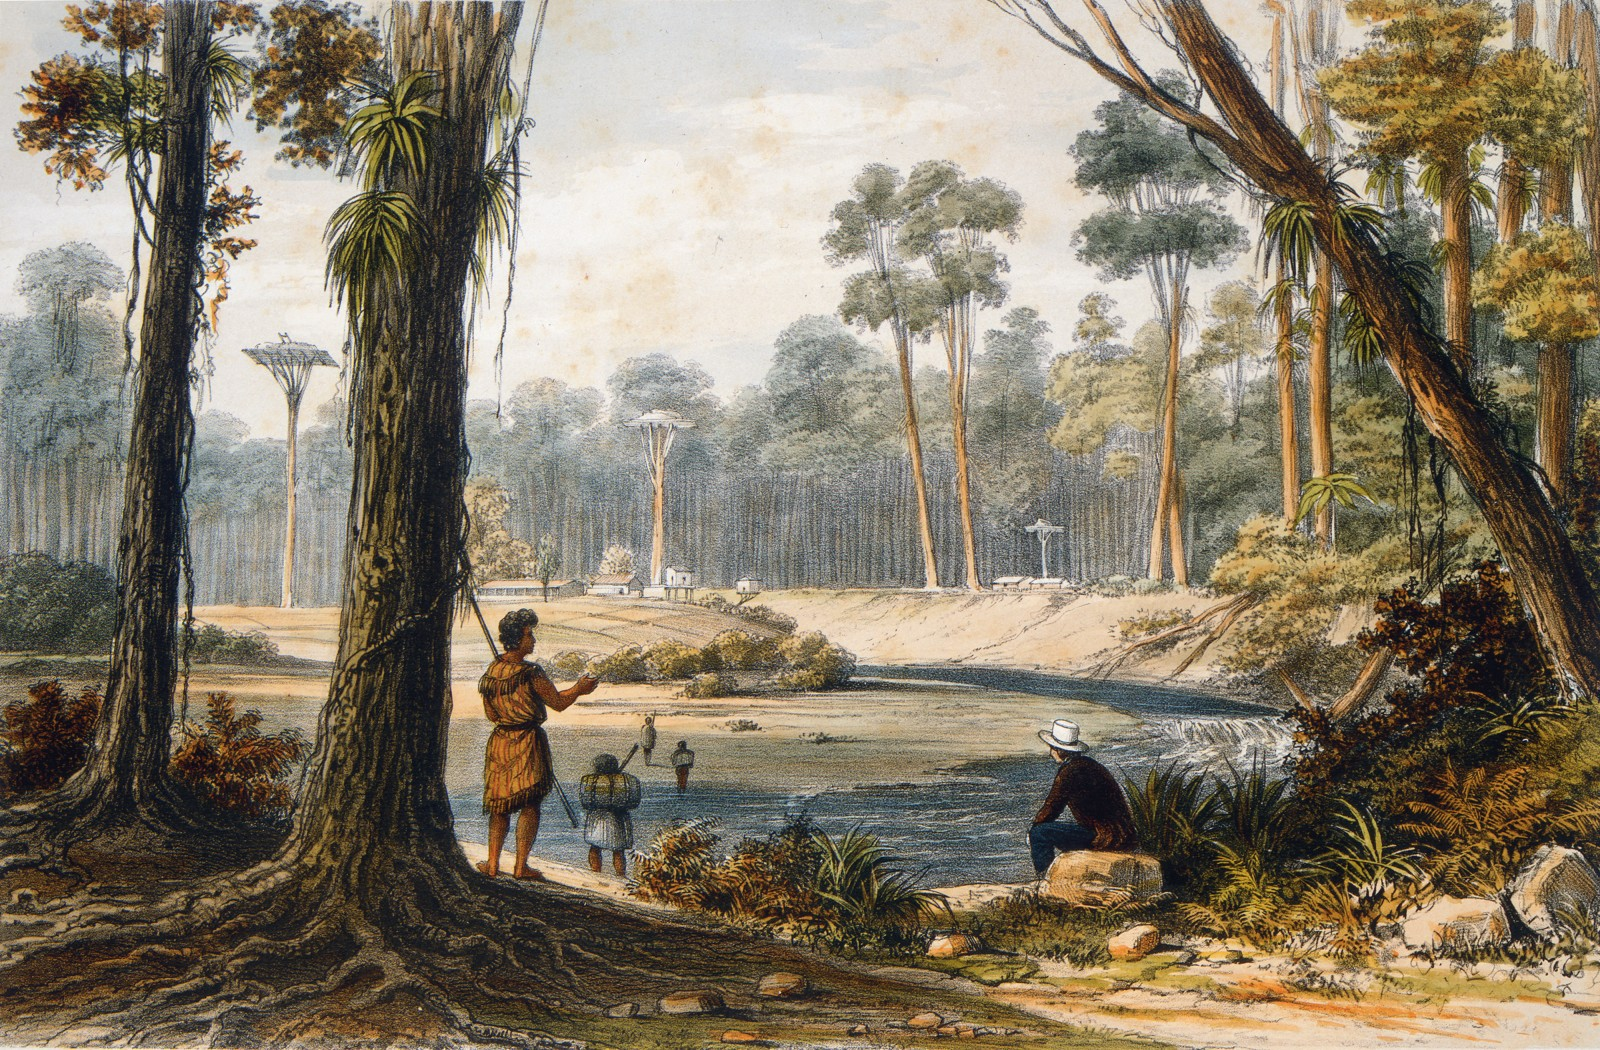 """Four years before he signed on as draughtsman for the Beagle voyage, London-born travel artist Augustus Earle lived and painted in Northland. He sketched this scene, depicting legendary Nga Puhi chief Patuone's """"country residence"""", during a journey in 1827 from the Hokianga Harbour to the Bay of Islands, through thick kauri forest. Earle described being """"kindly entertained by the chief"""", and noted that Patuone's crops of kumara and maize """"arrived at a perfection never before witnessed"""". Darwin, by contrast, was uncomplimentary about Maori life."""